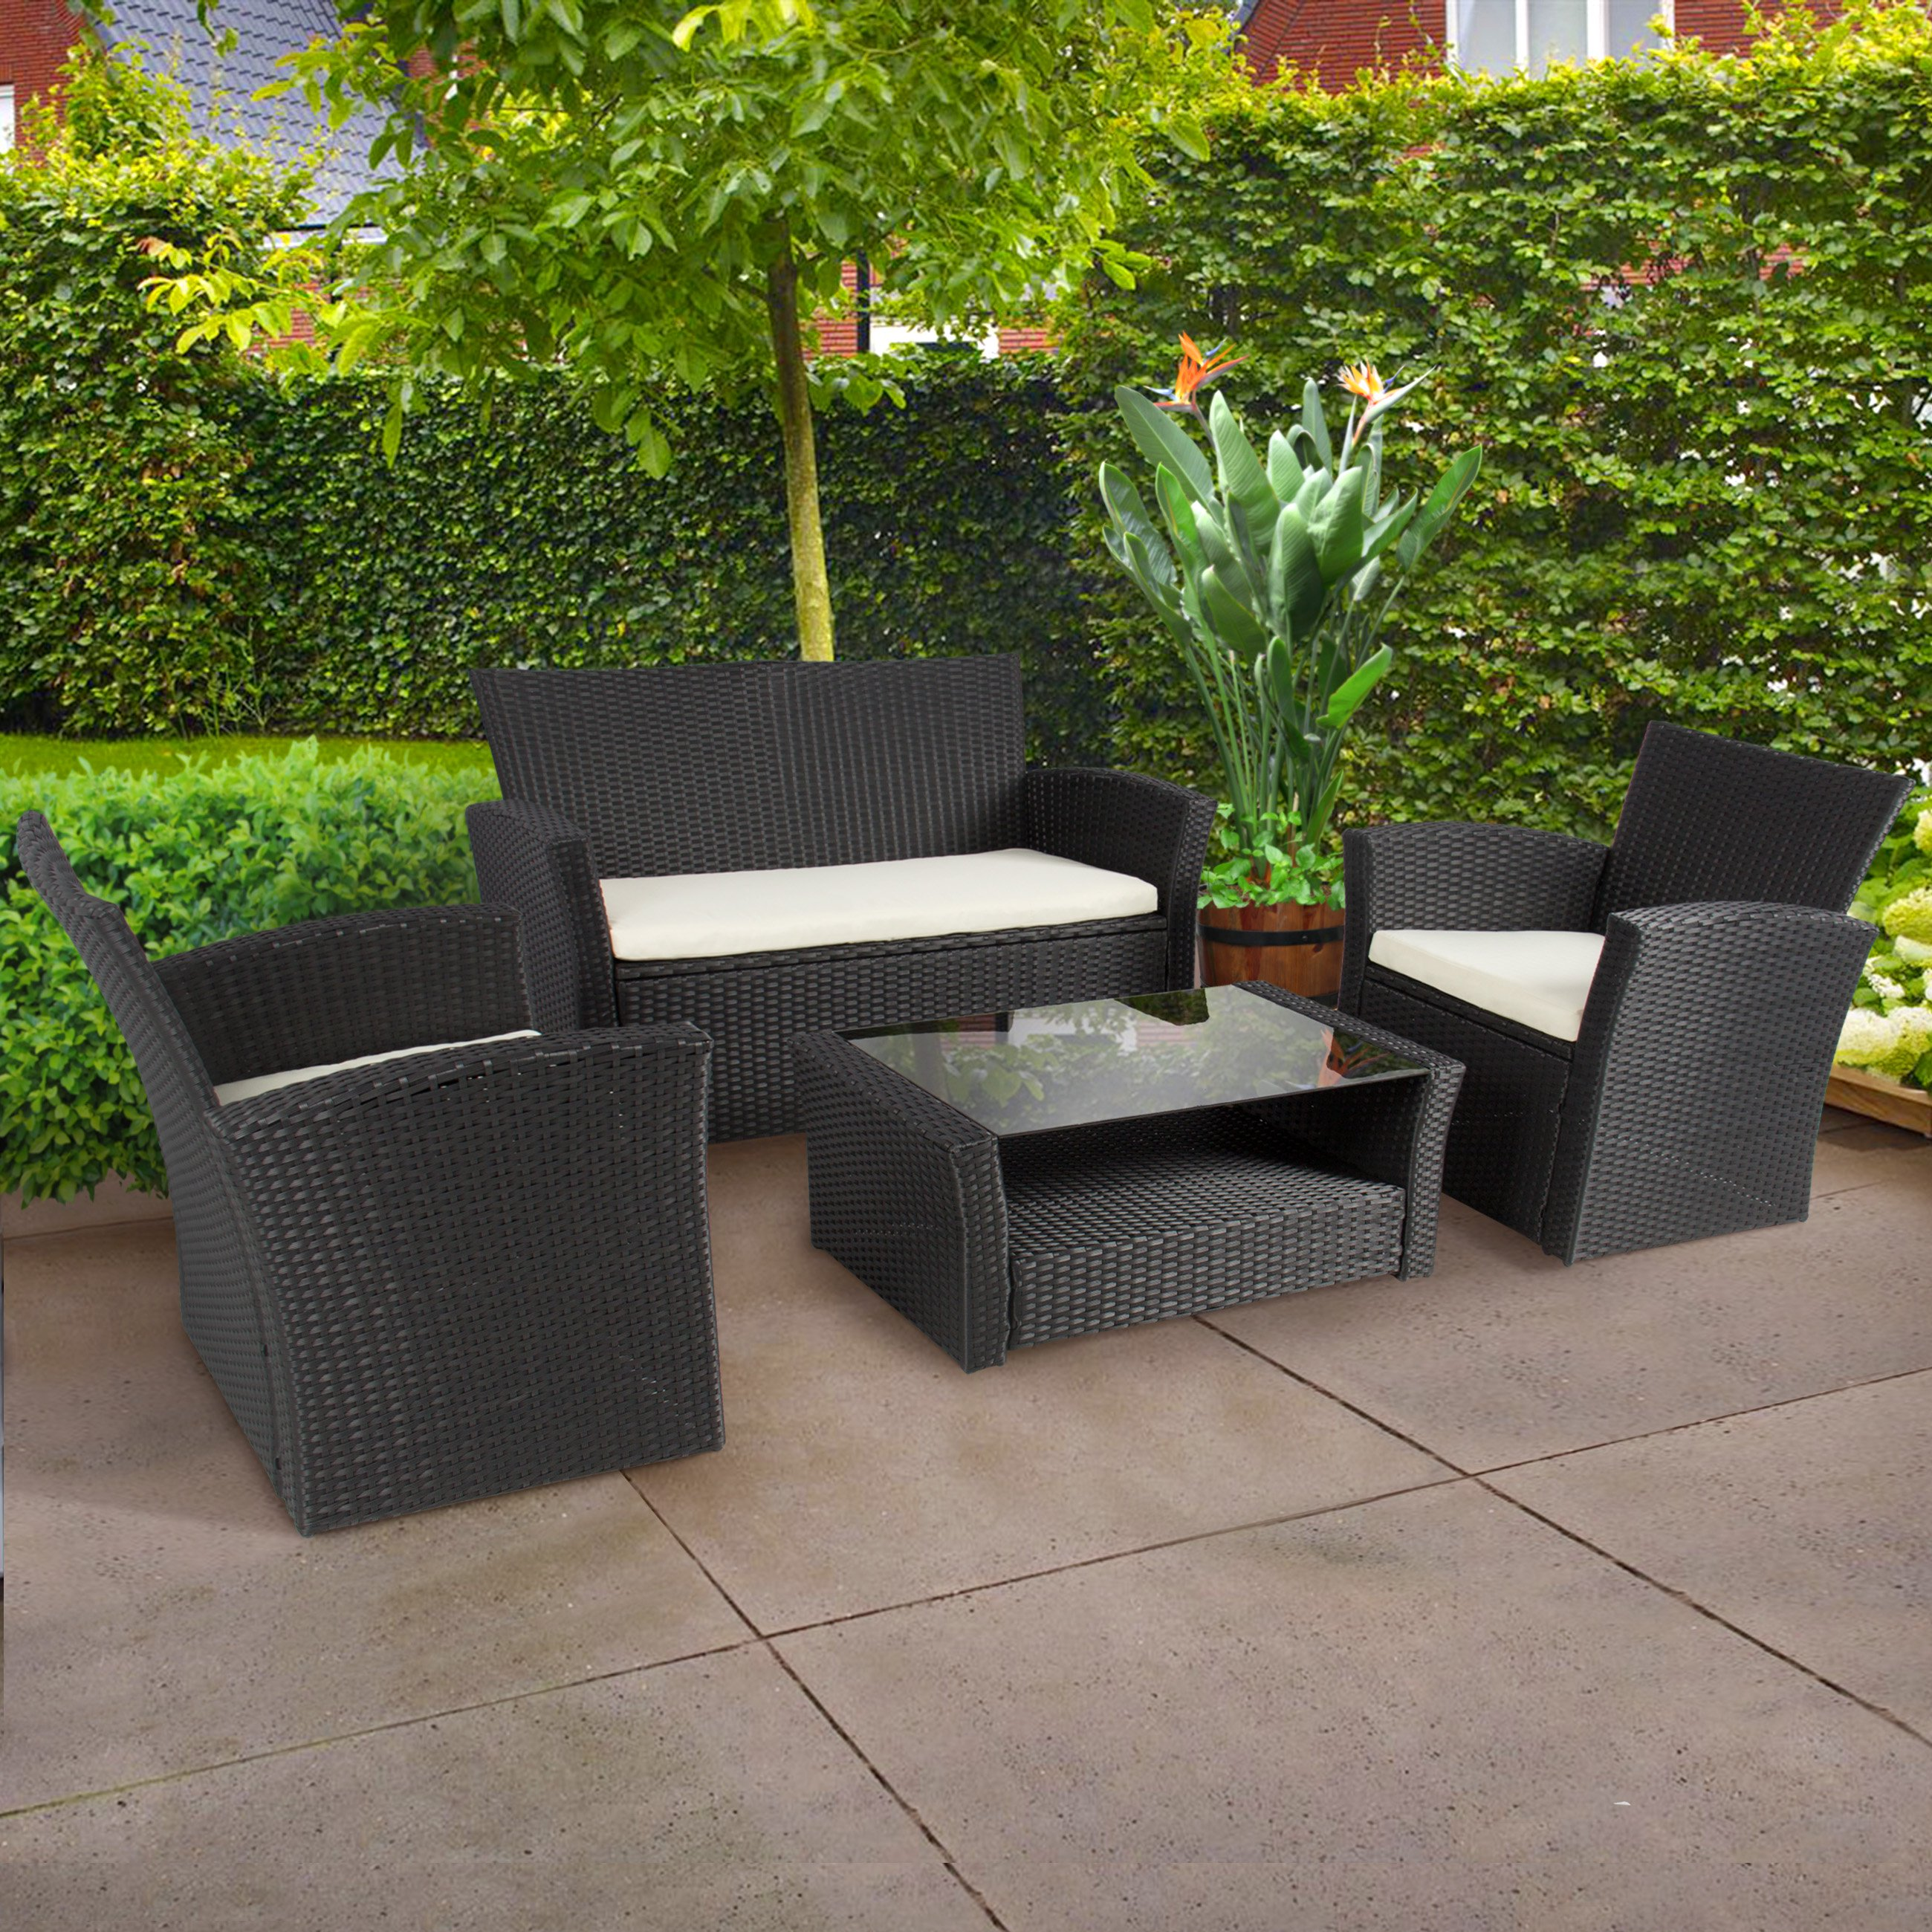 Marvelous 4pc Outdoor Patio Garden Furniture Wicker Rattan Sofa Set Black